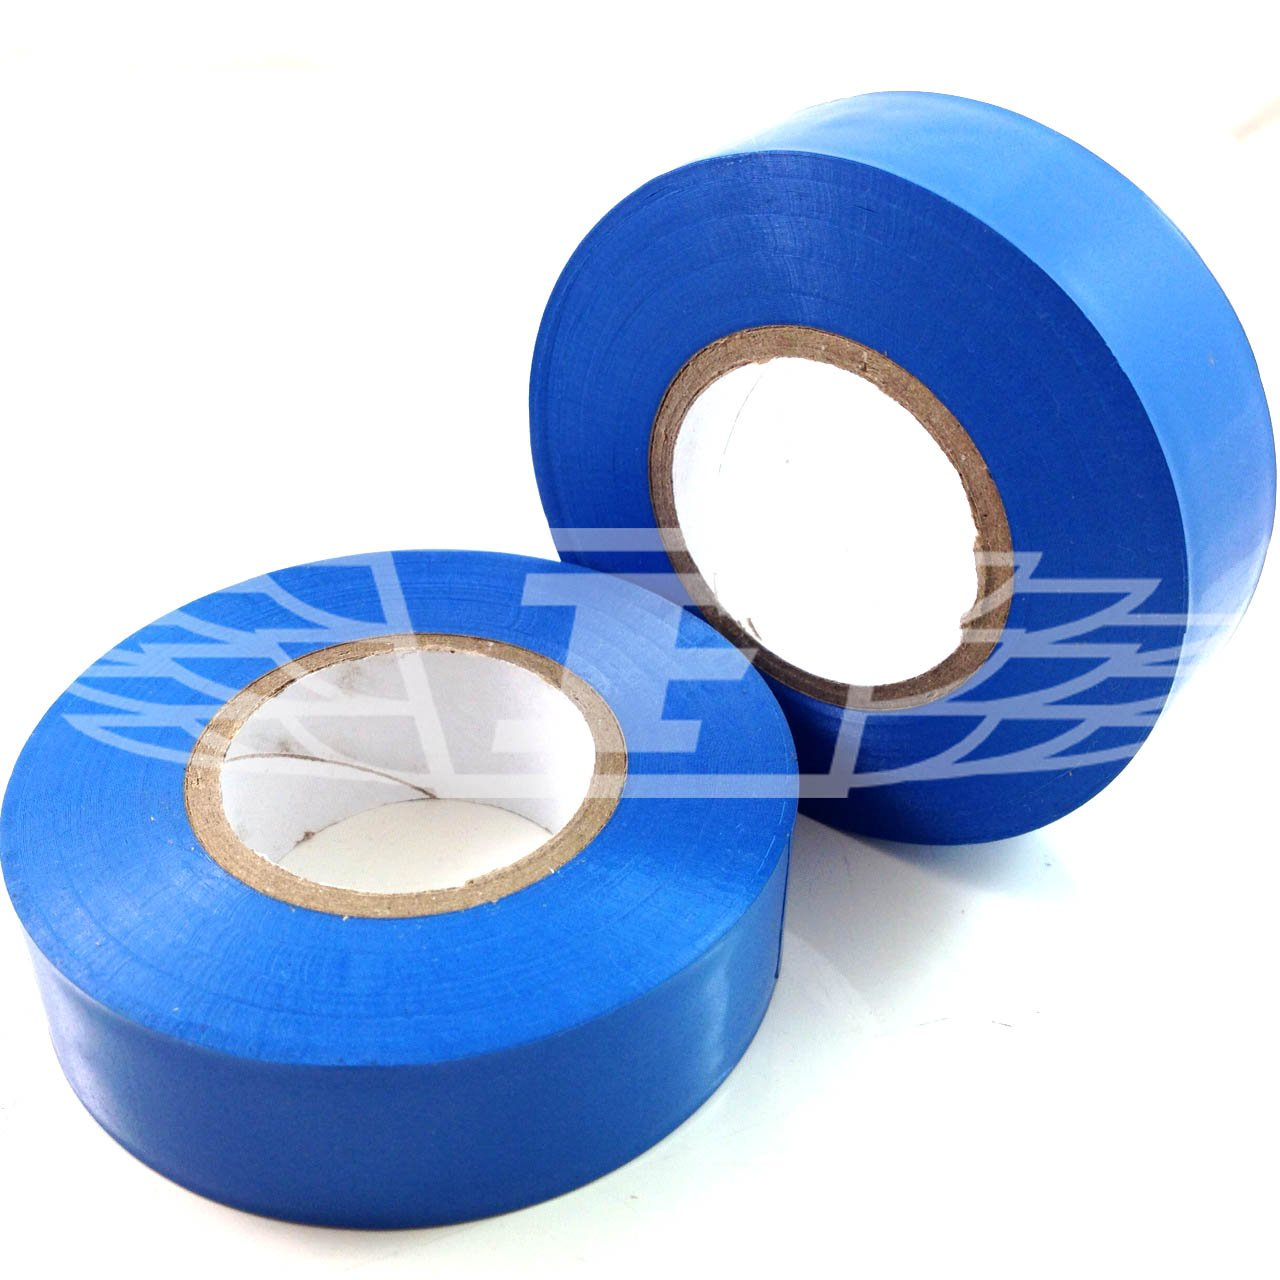 ELECTRICAL PVC INSULATION / INSULATING TAPE 19mm x 20m (BUY 5 TAPES, GET 1 FREE!) FLAME RETARDANT, FREE UK DELIVERY (Dark Blue) Falcon Workshop Supplies